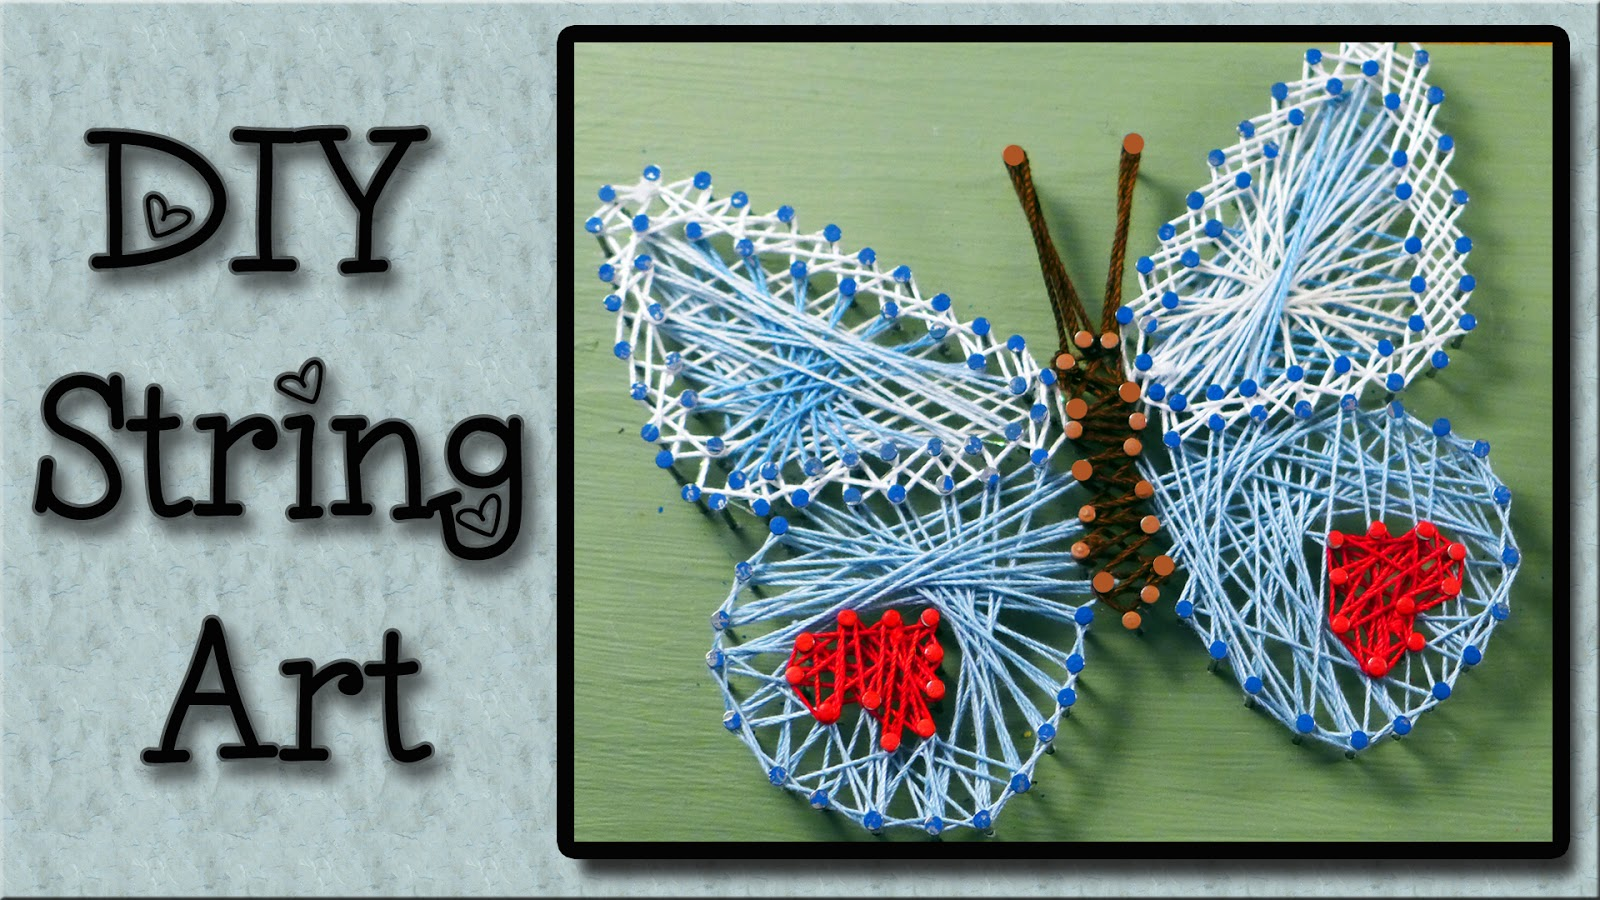 ... by step tutorial on how to do string art string art is a craft that is